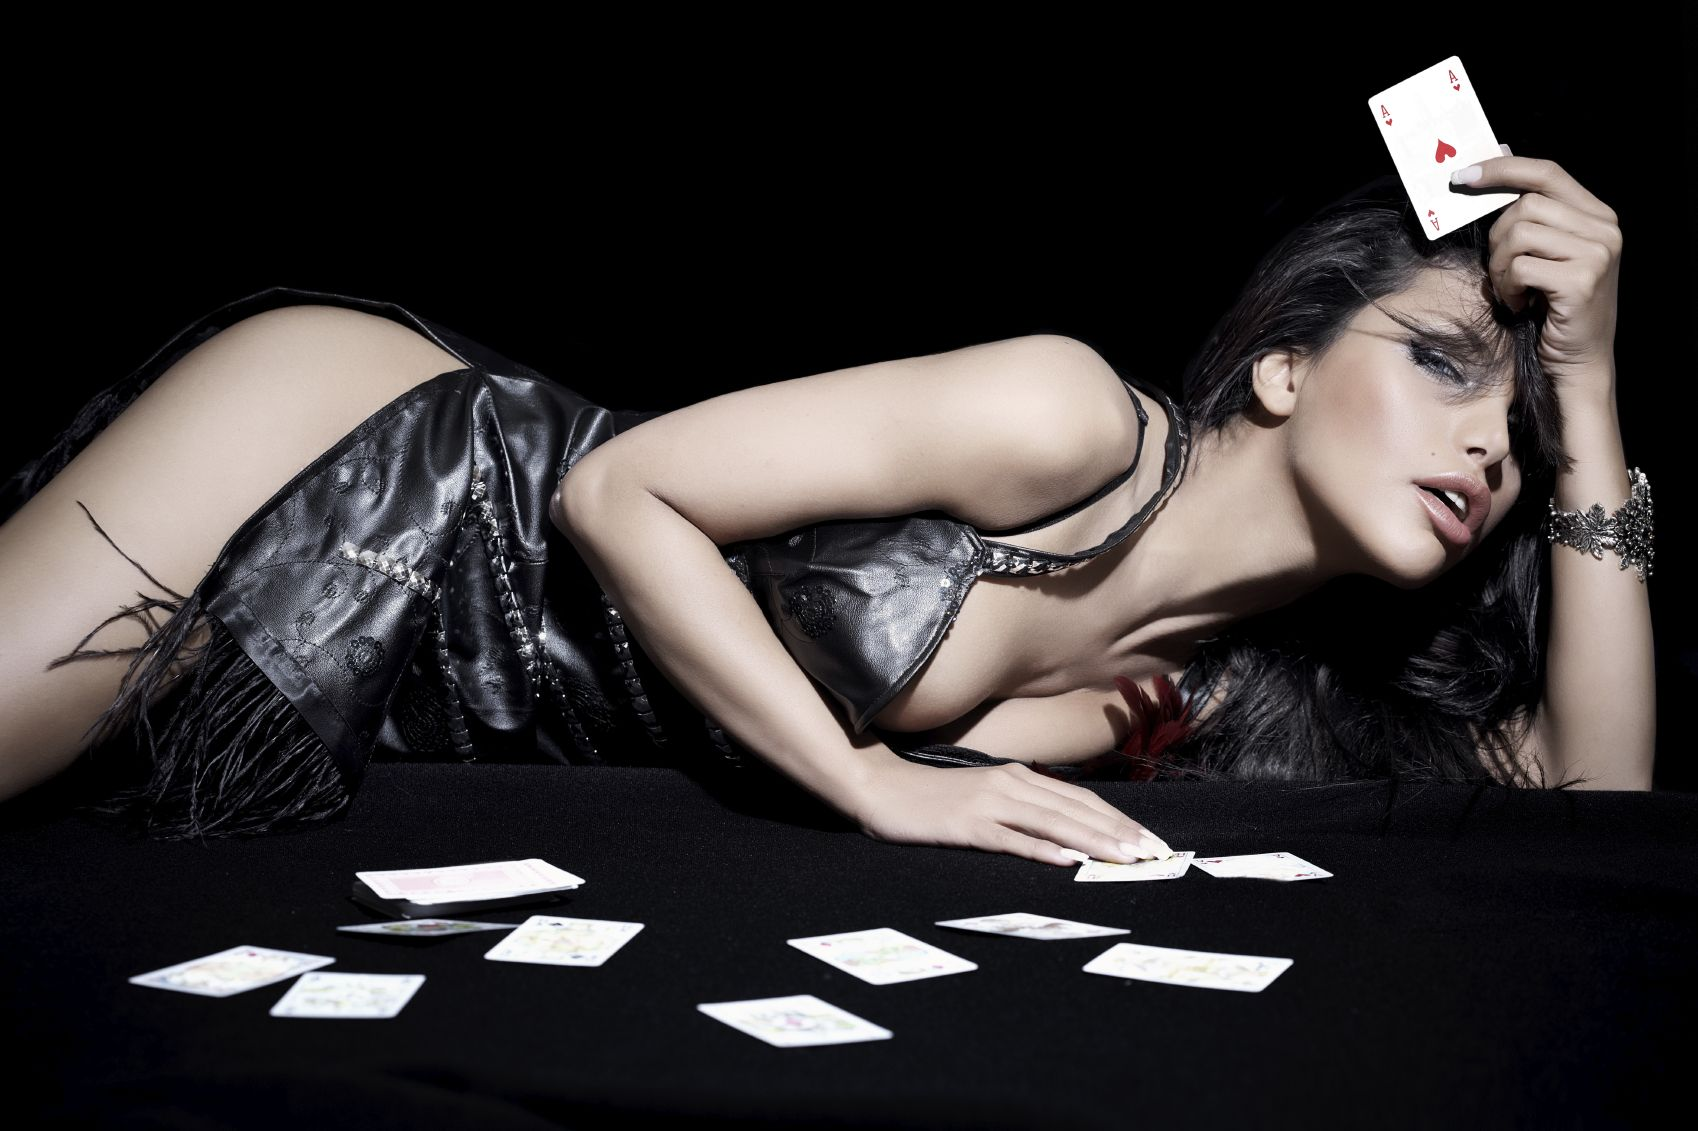 Sexy poker set sex playing cards